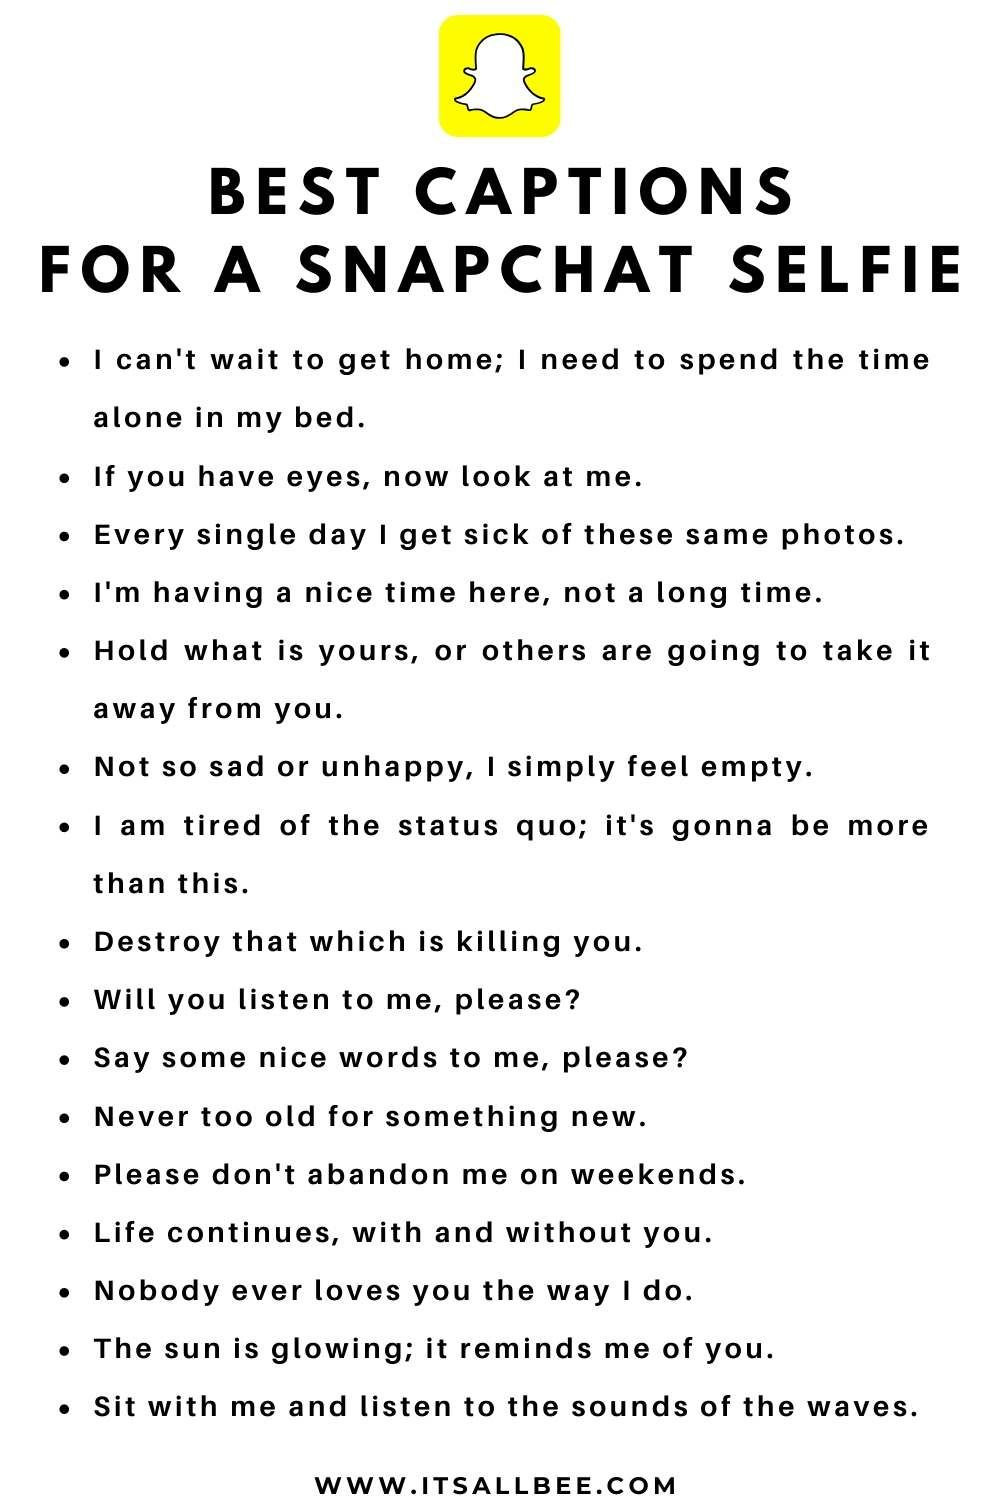 Cool Snapchat Quotes Captions Itsallbee Travel Blog In 2020 Snapchat Quotes Life Captions Quotes